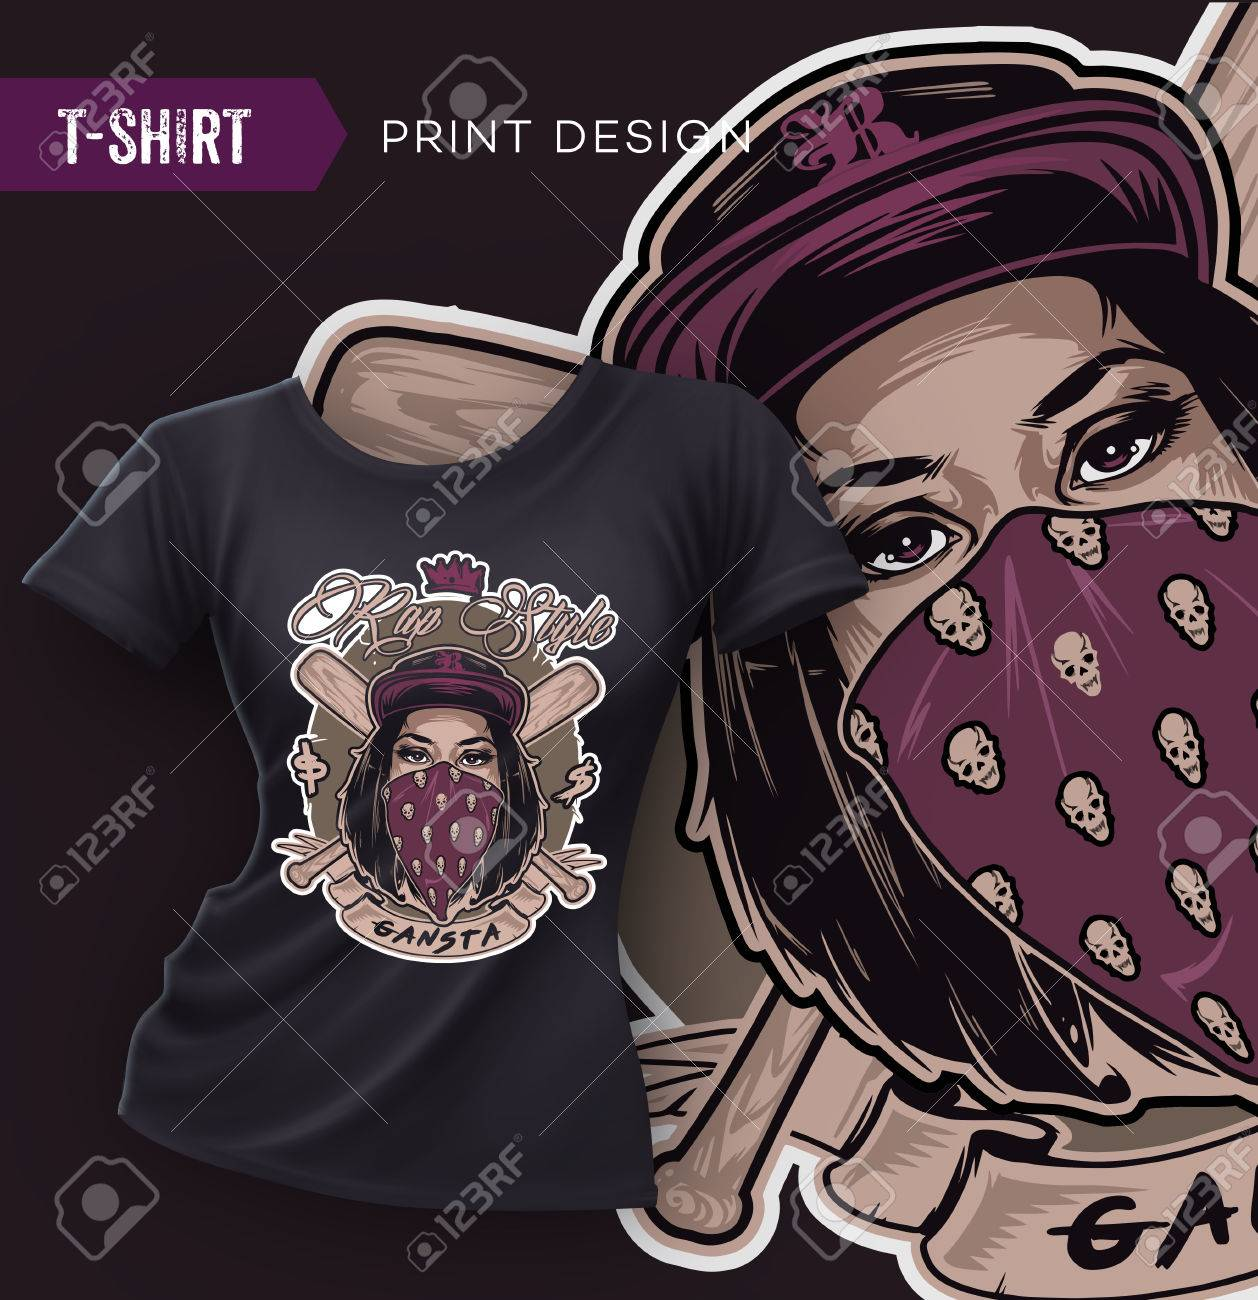 T shirt design hip hop - Swag T Shirt Design With Pretty Hip Hop Girl Face Vector Illustration Stock Vector